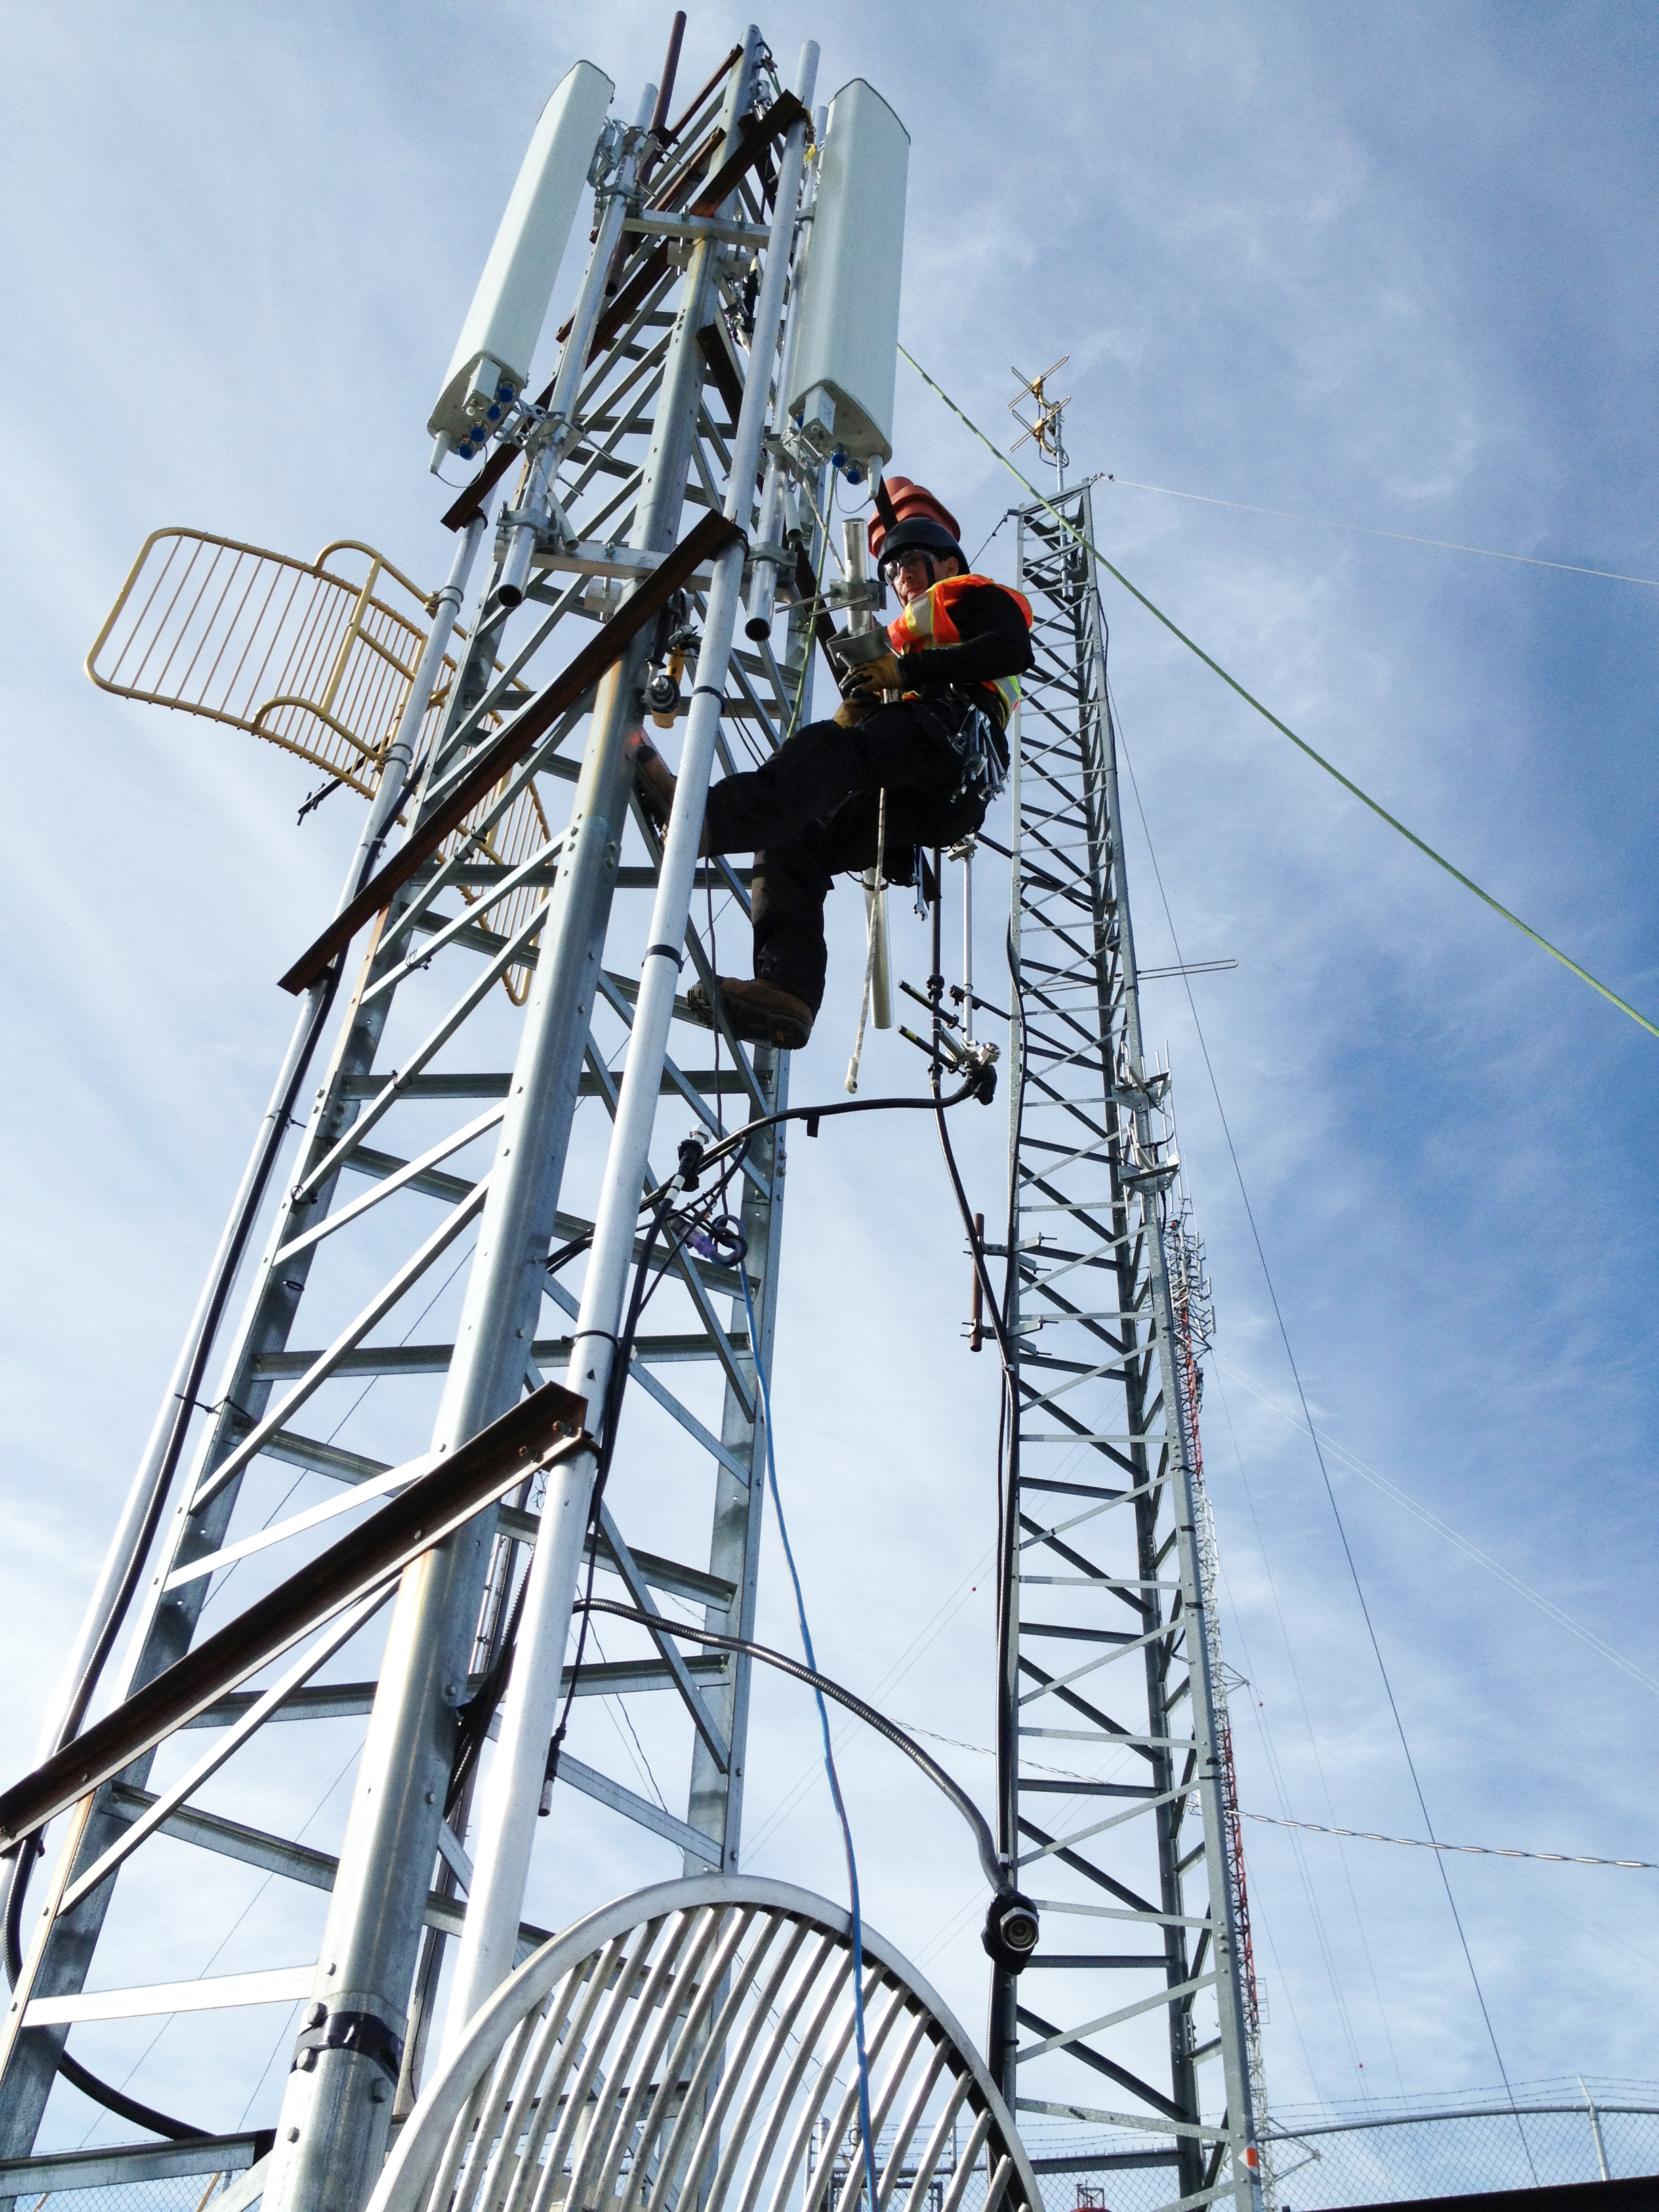 File:Ice Wireless Building 3G HSPA+ base station tower jpg